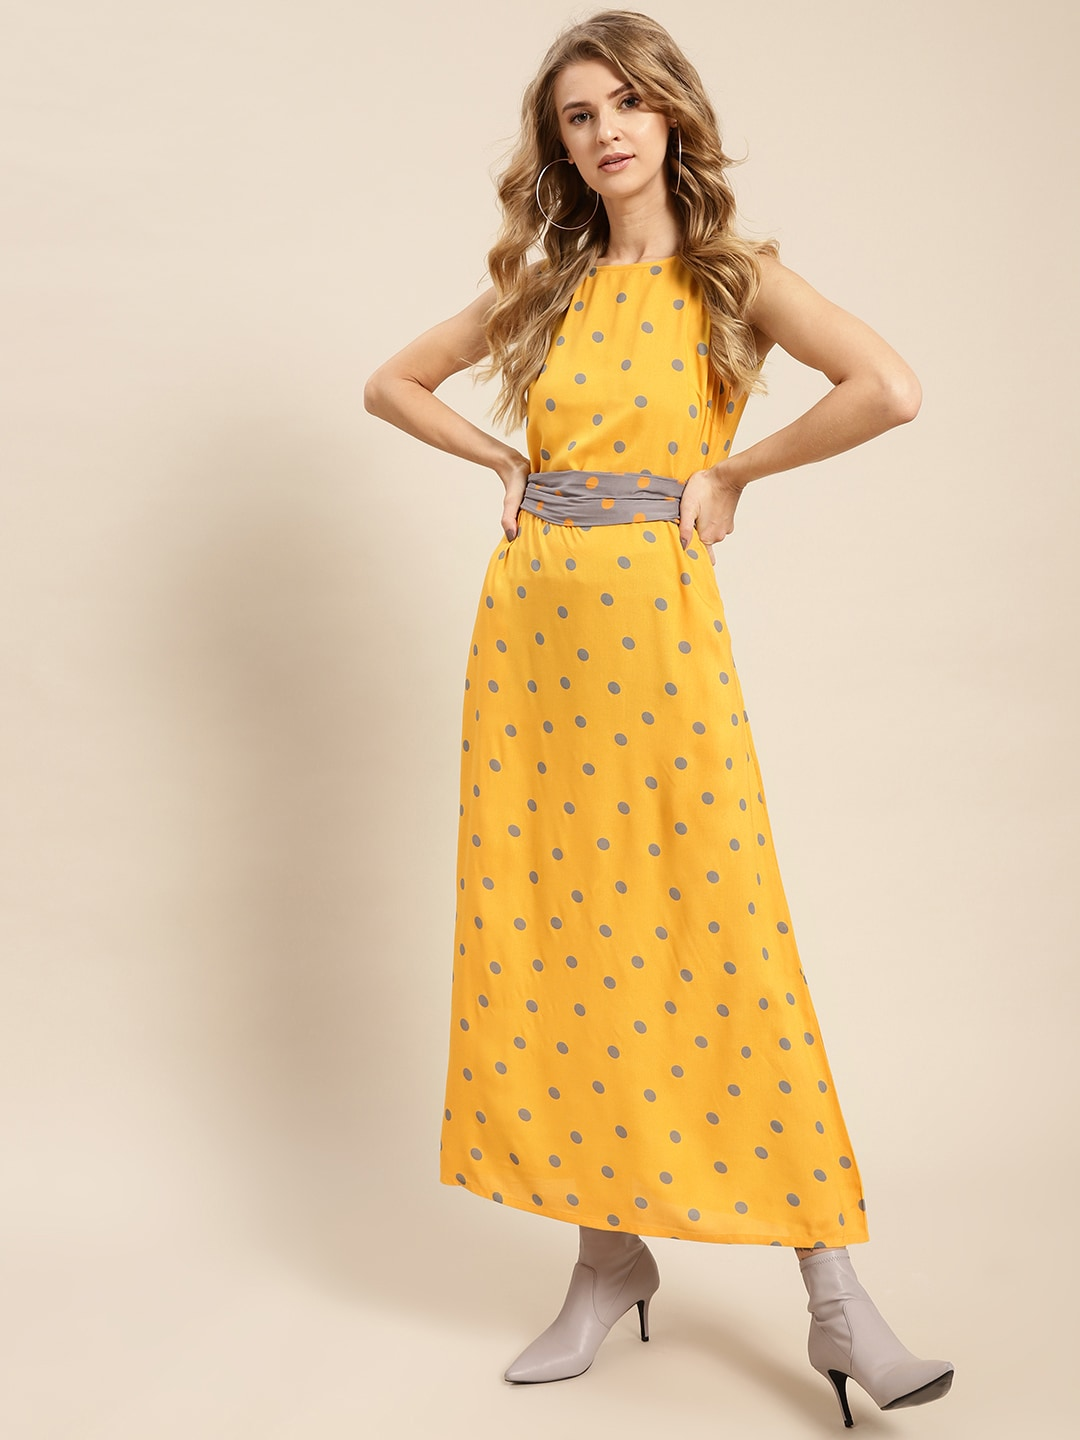 c36f7dc8f57 Yellow Dress For Women - Buy Yellow Dress For Women online in India